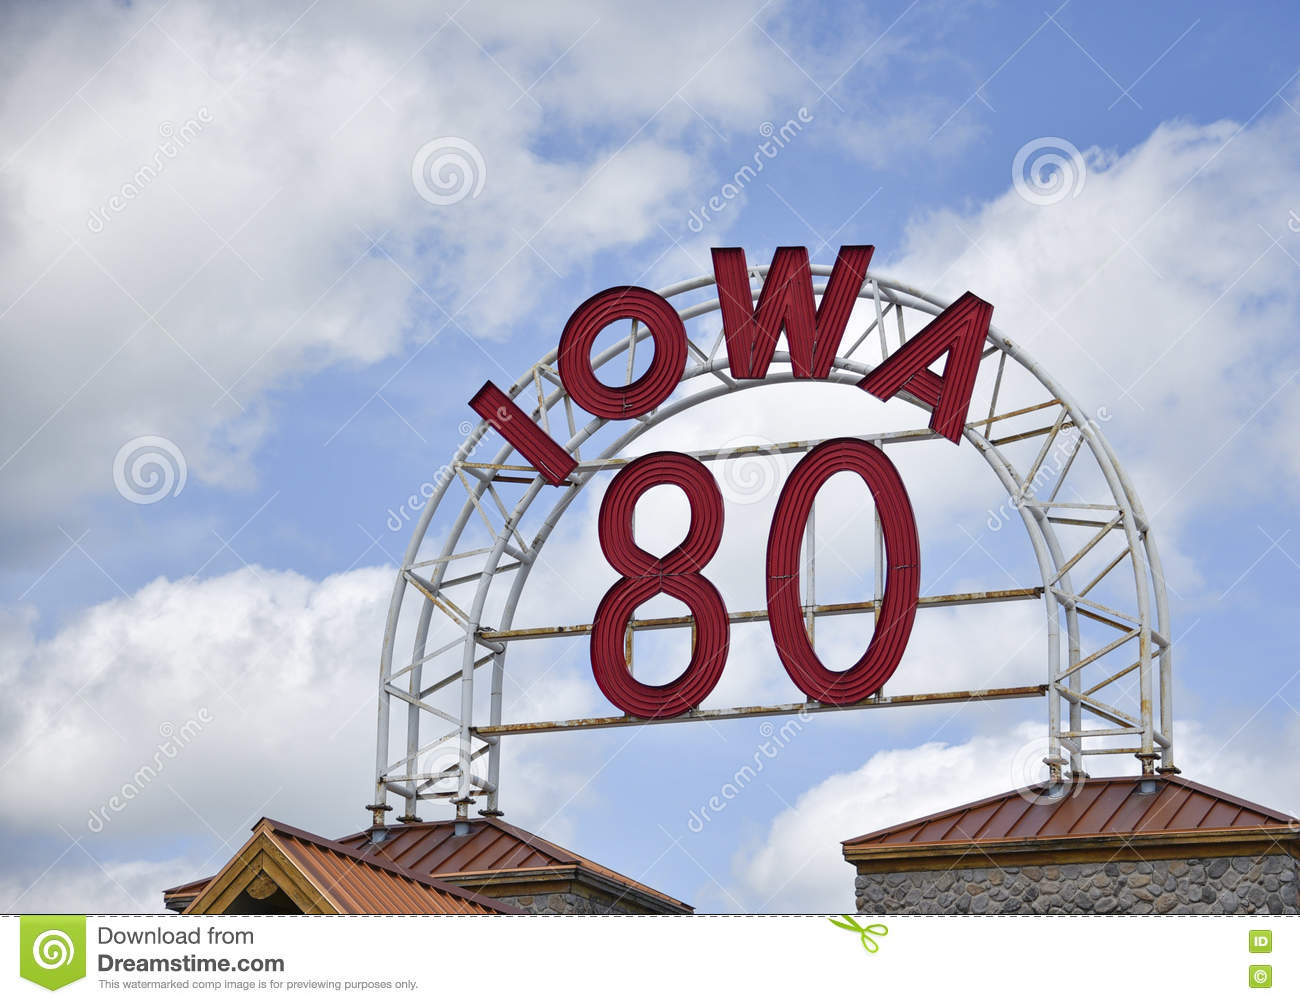 Iowa 80 Sign editorial stock photo  Image of station - 75877688